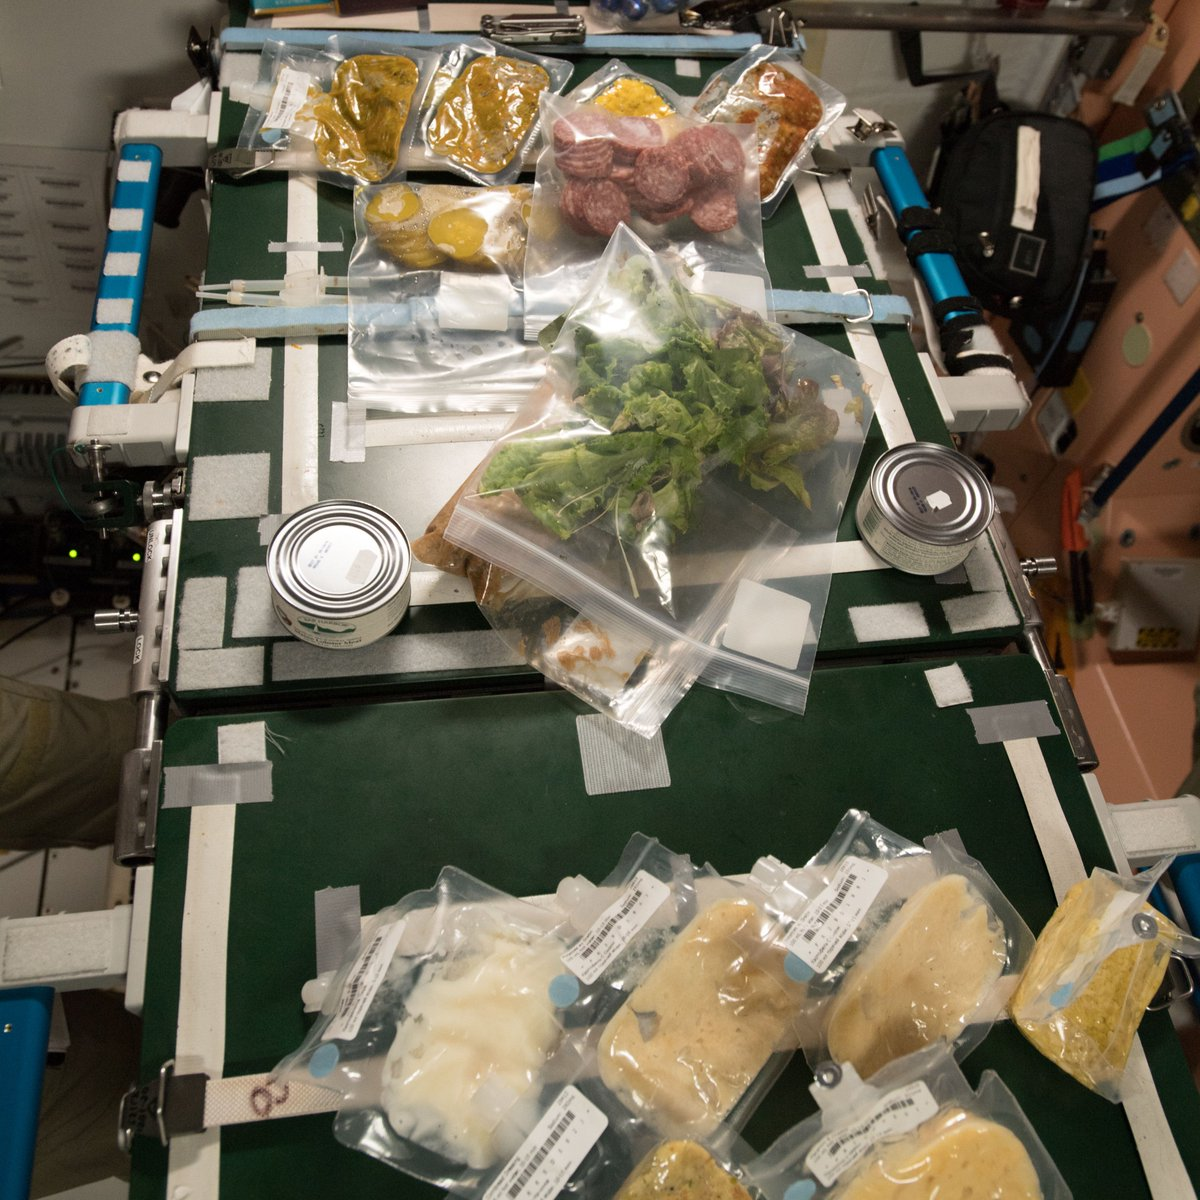 This week is #Thanksgiving! Time to bring awareness to health and nutrition for astronauts living on the @Space_Station. NASA's Human Research Program studies how food and nutrition will be important for future long-duration missions. https://t.co/WH1JlB85Dm https://t.co/AnV5d0mtwe